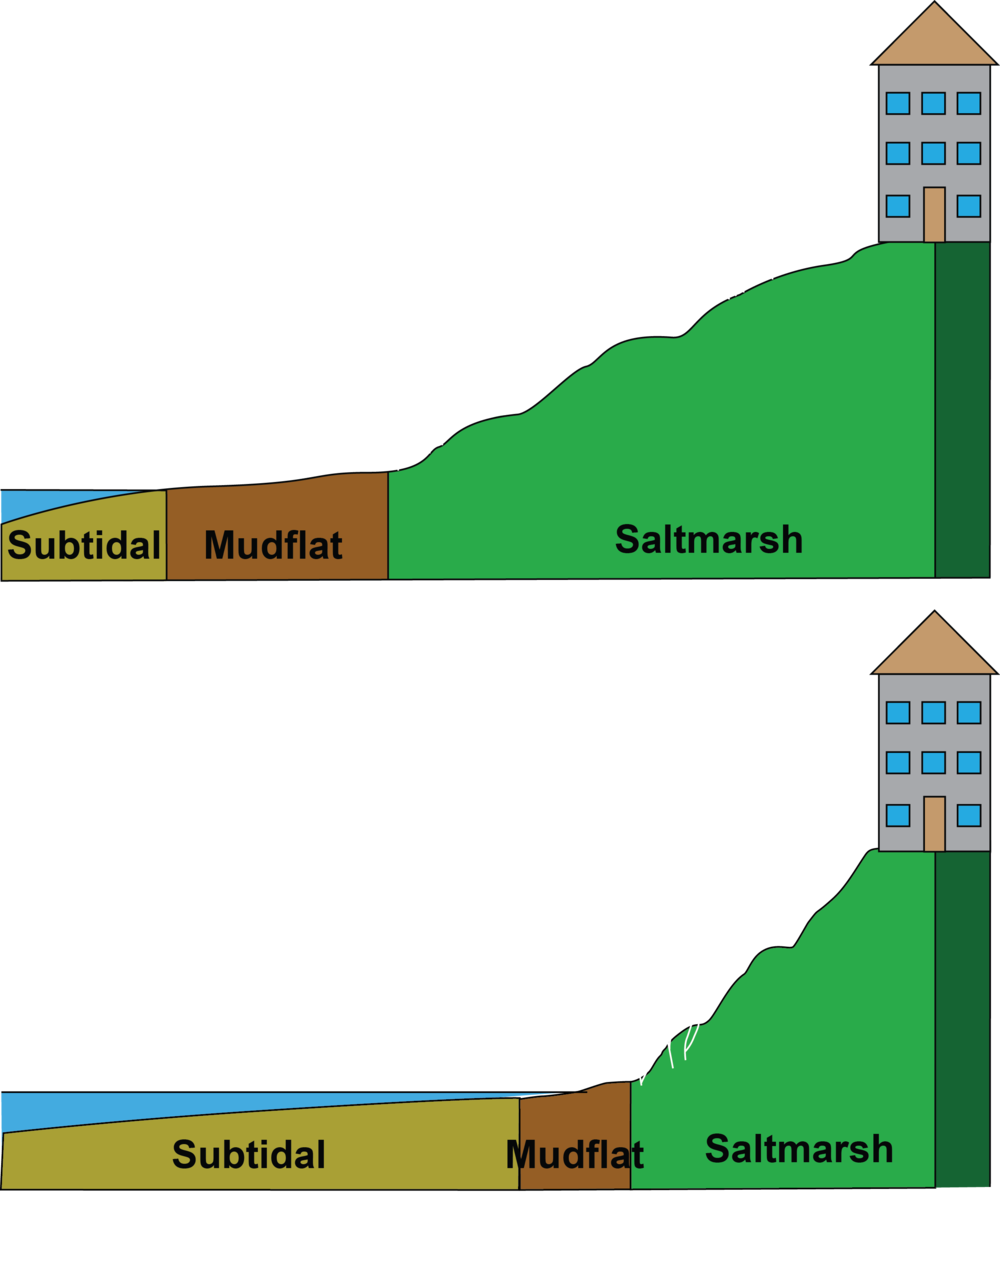 Top: Initial conditions in the wetland.  Below: Habitats decrease as sea level rises.